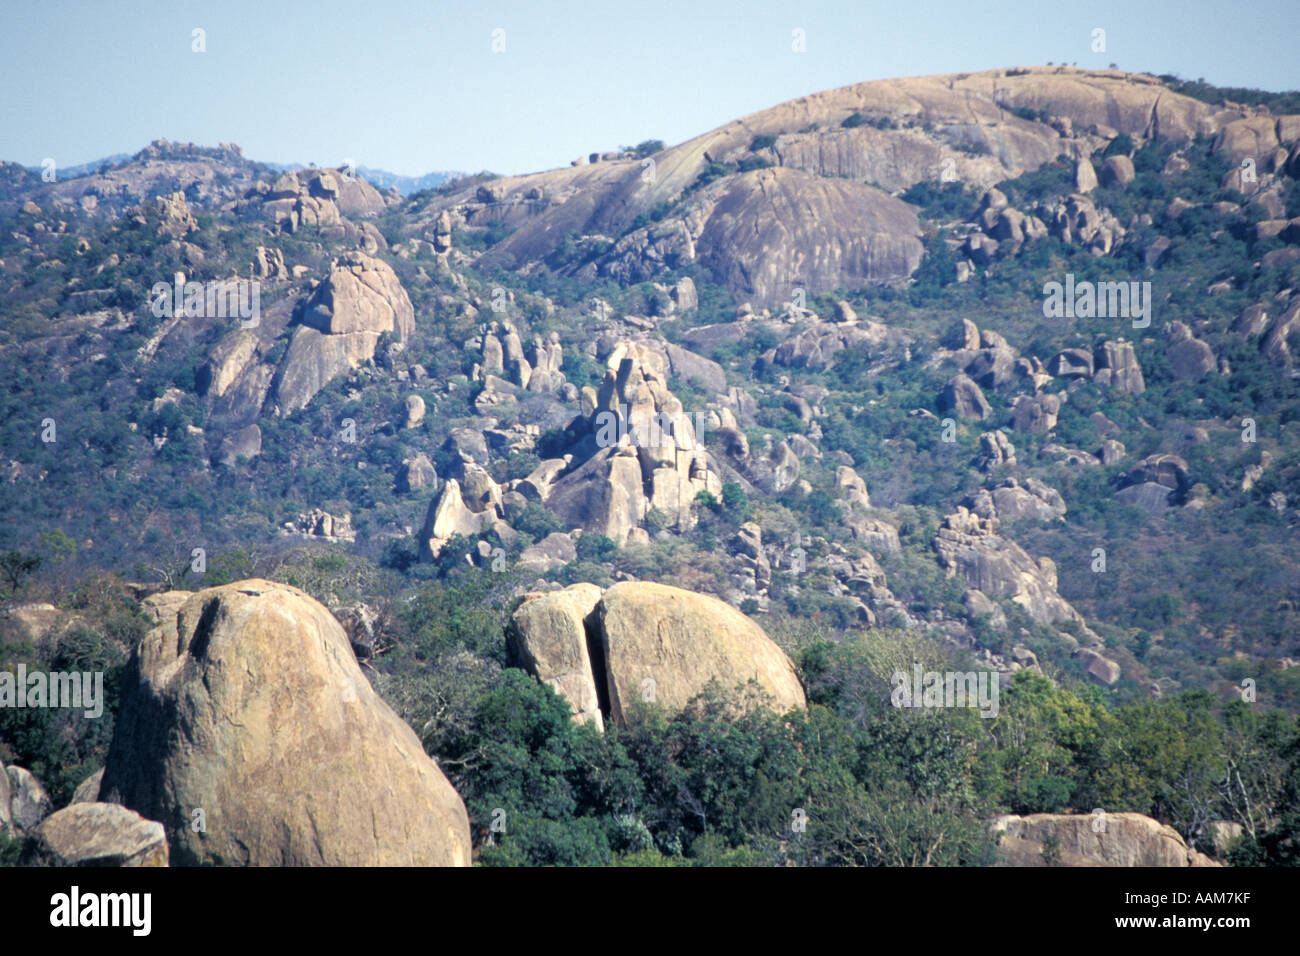 Africa Cecil John Rhodes Rhodesia 'View of the World' from Matopos Hills - Stock Image